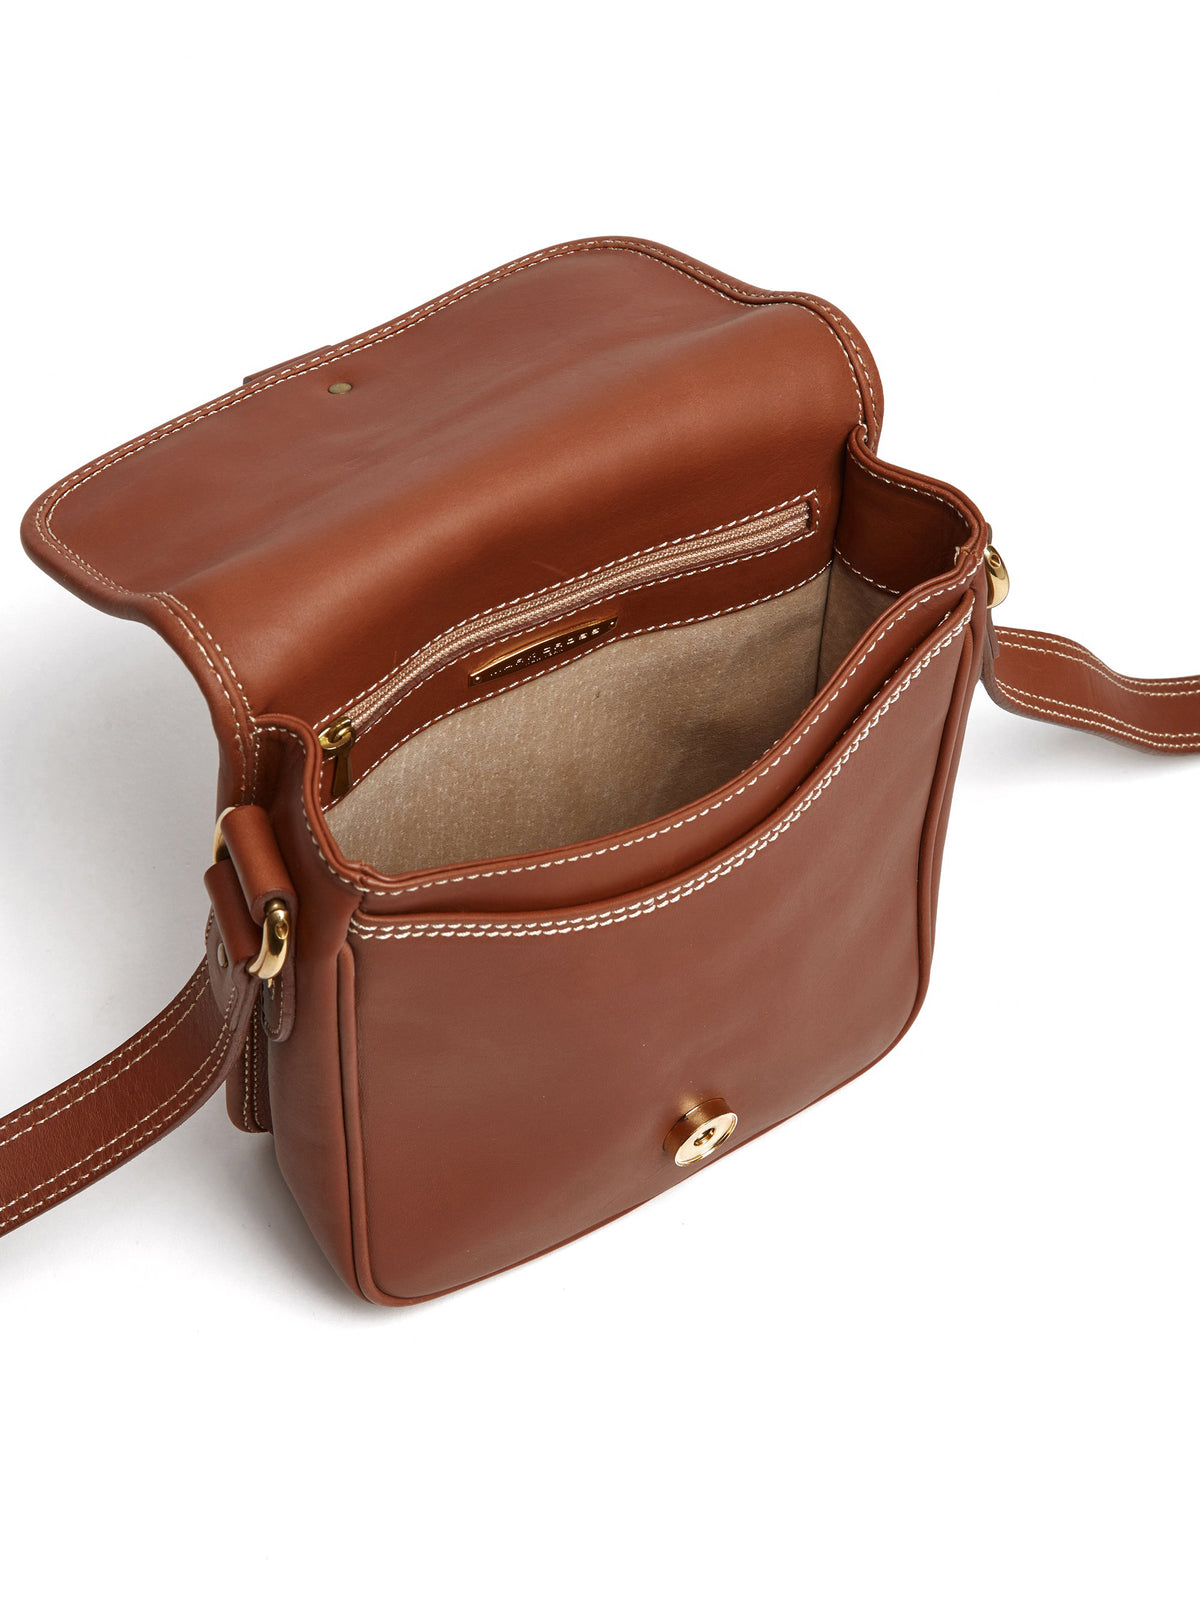 Vintage Leather Crossbody Bag With Contrast Stitching